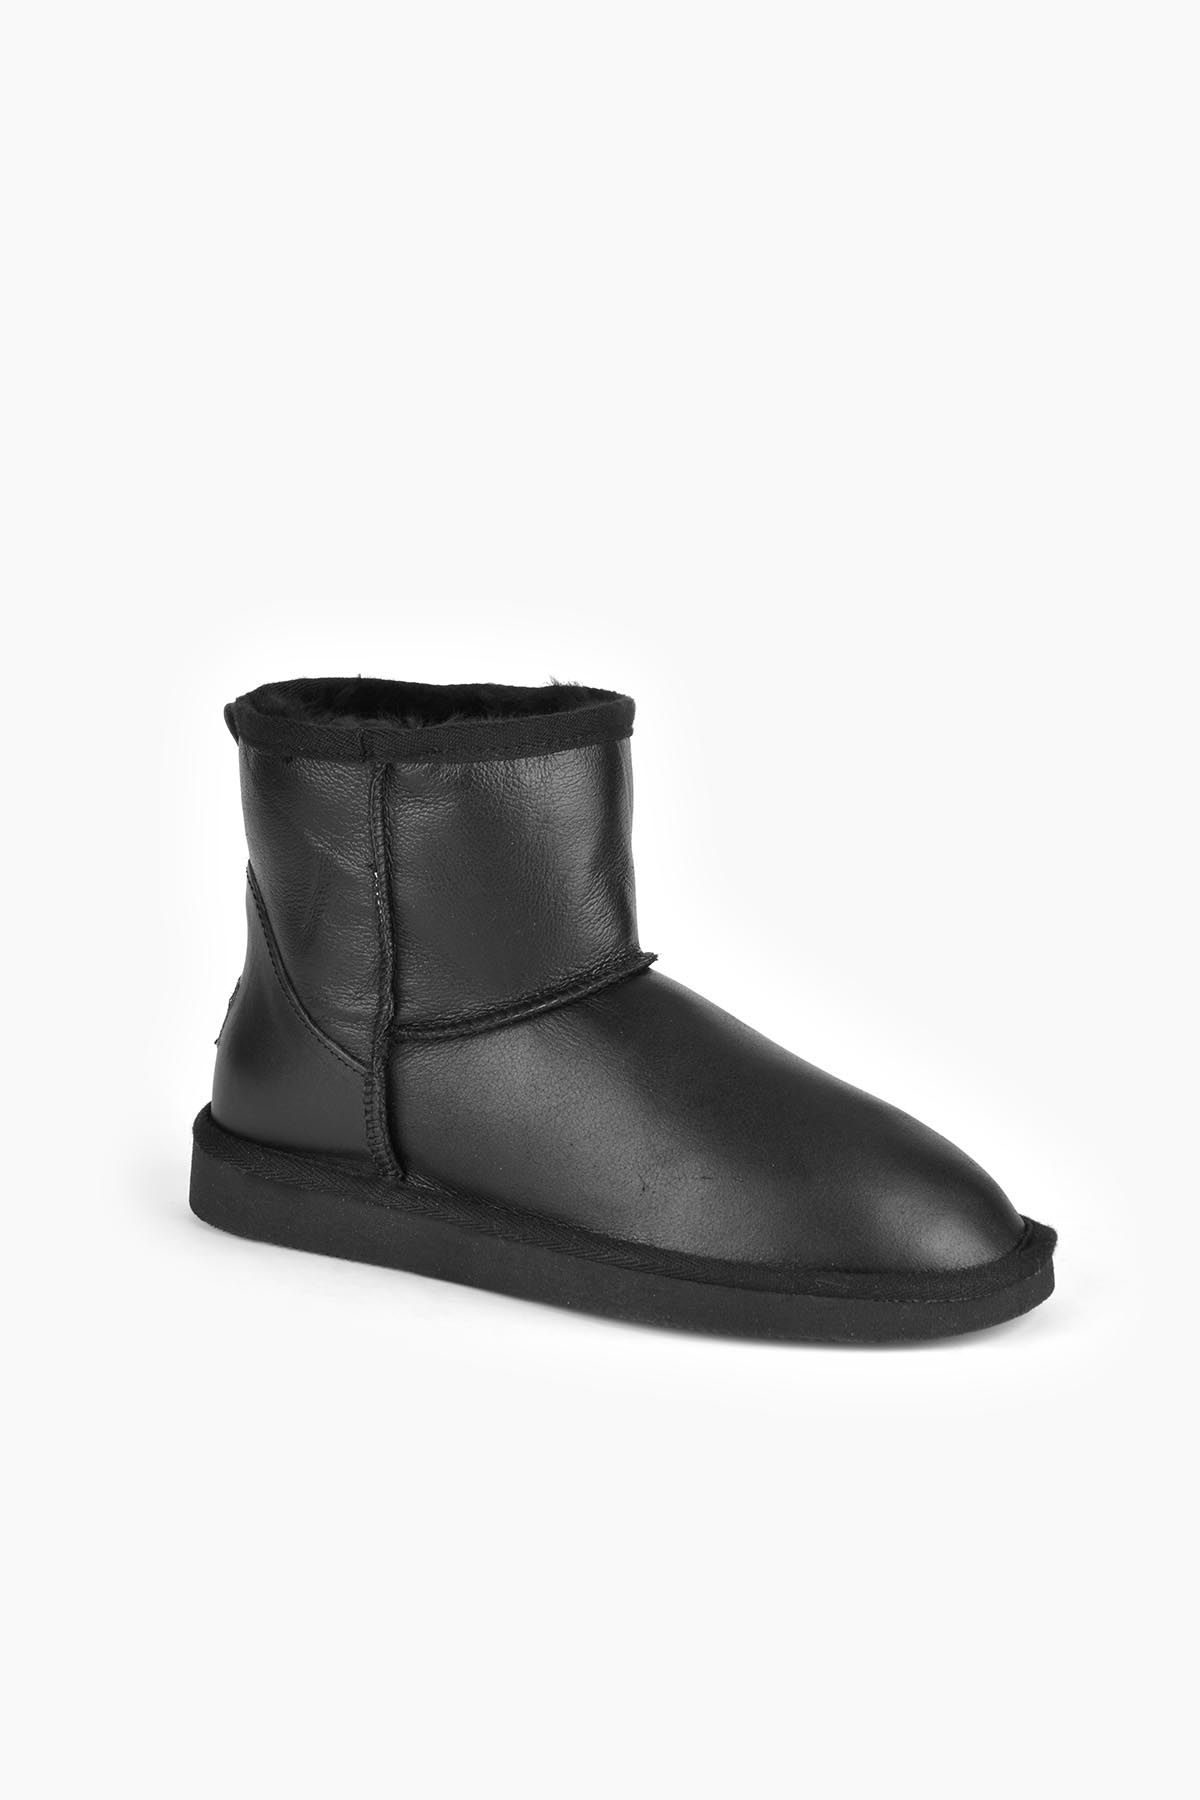 Pegia Short Women Ugg Style Boots From Genuine Leather And Sheepskin Fur Black